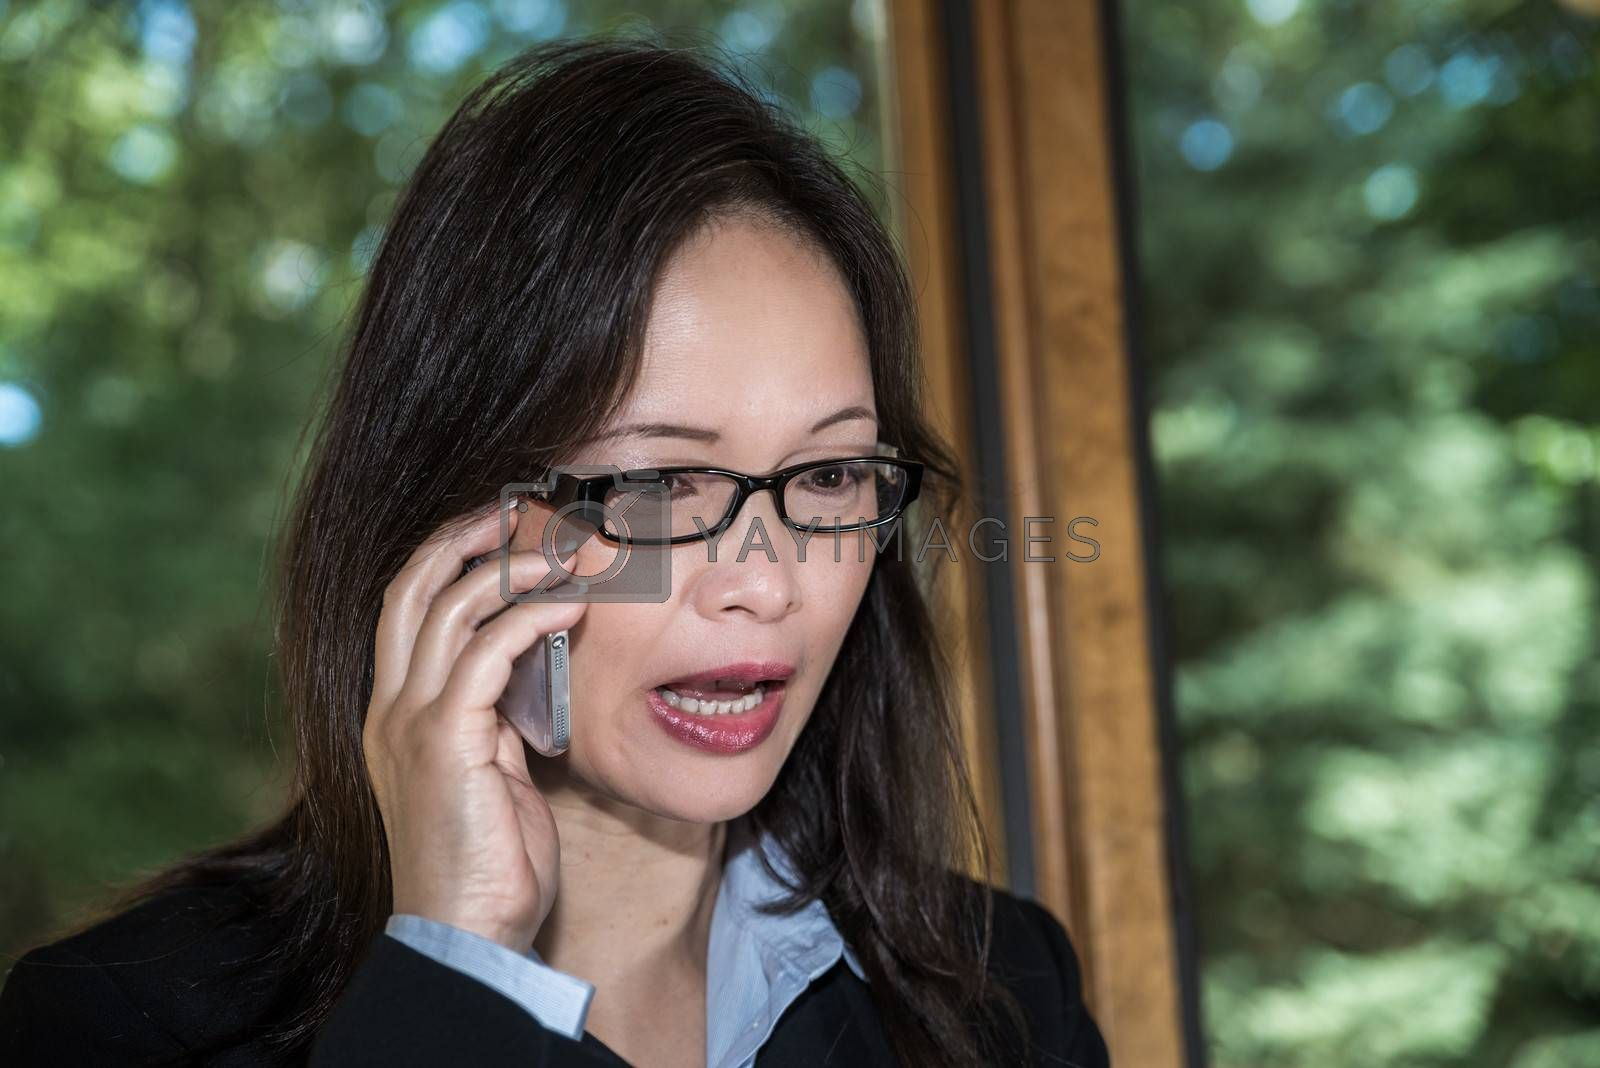 Woman in business suit speaking on a cellphone in front of a window looking upset